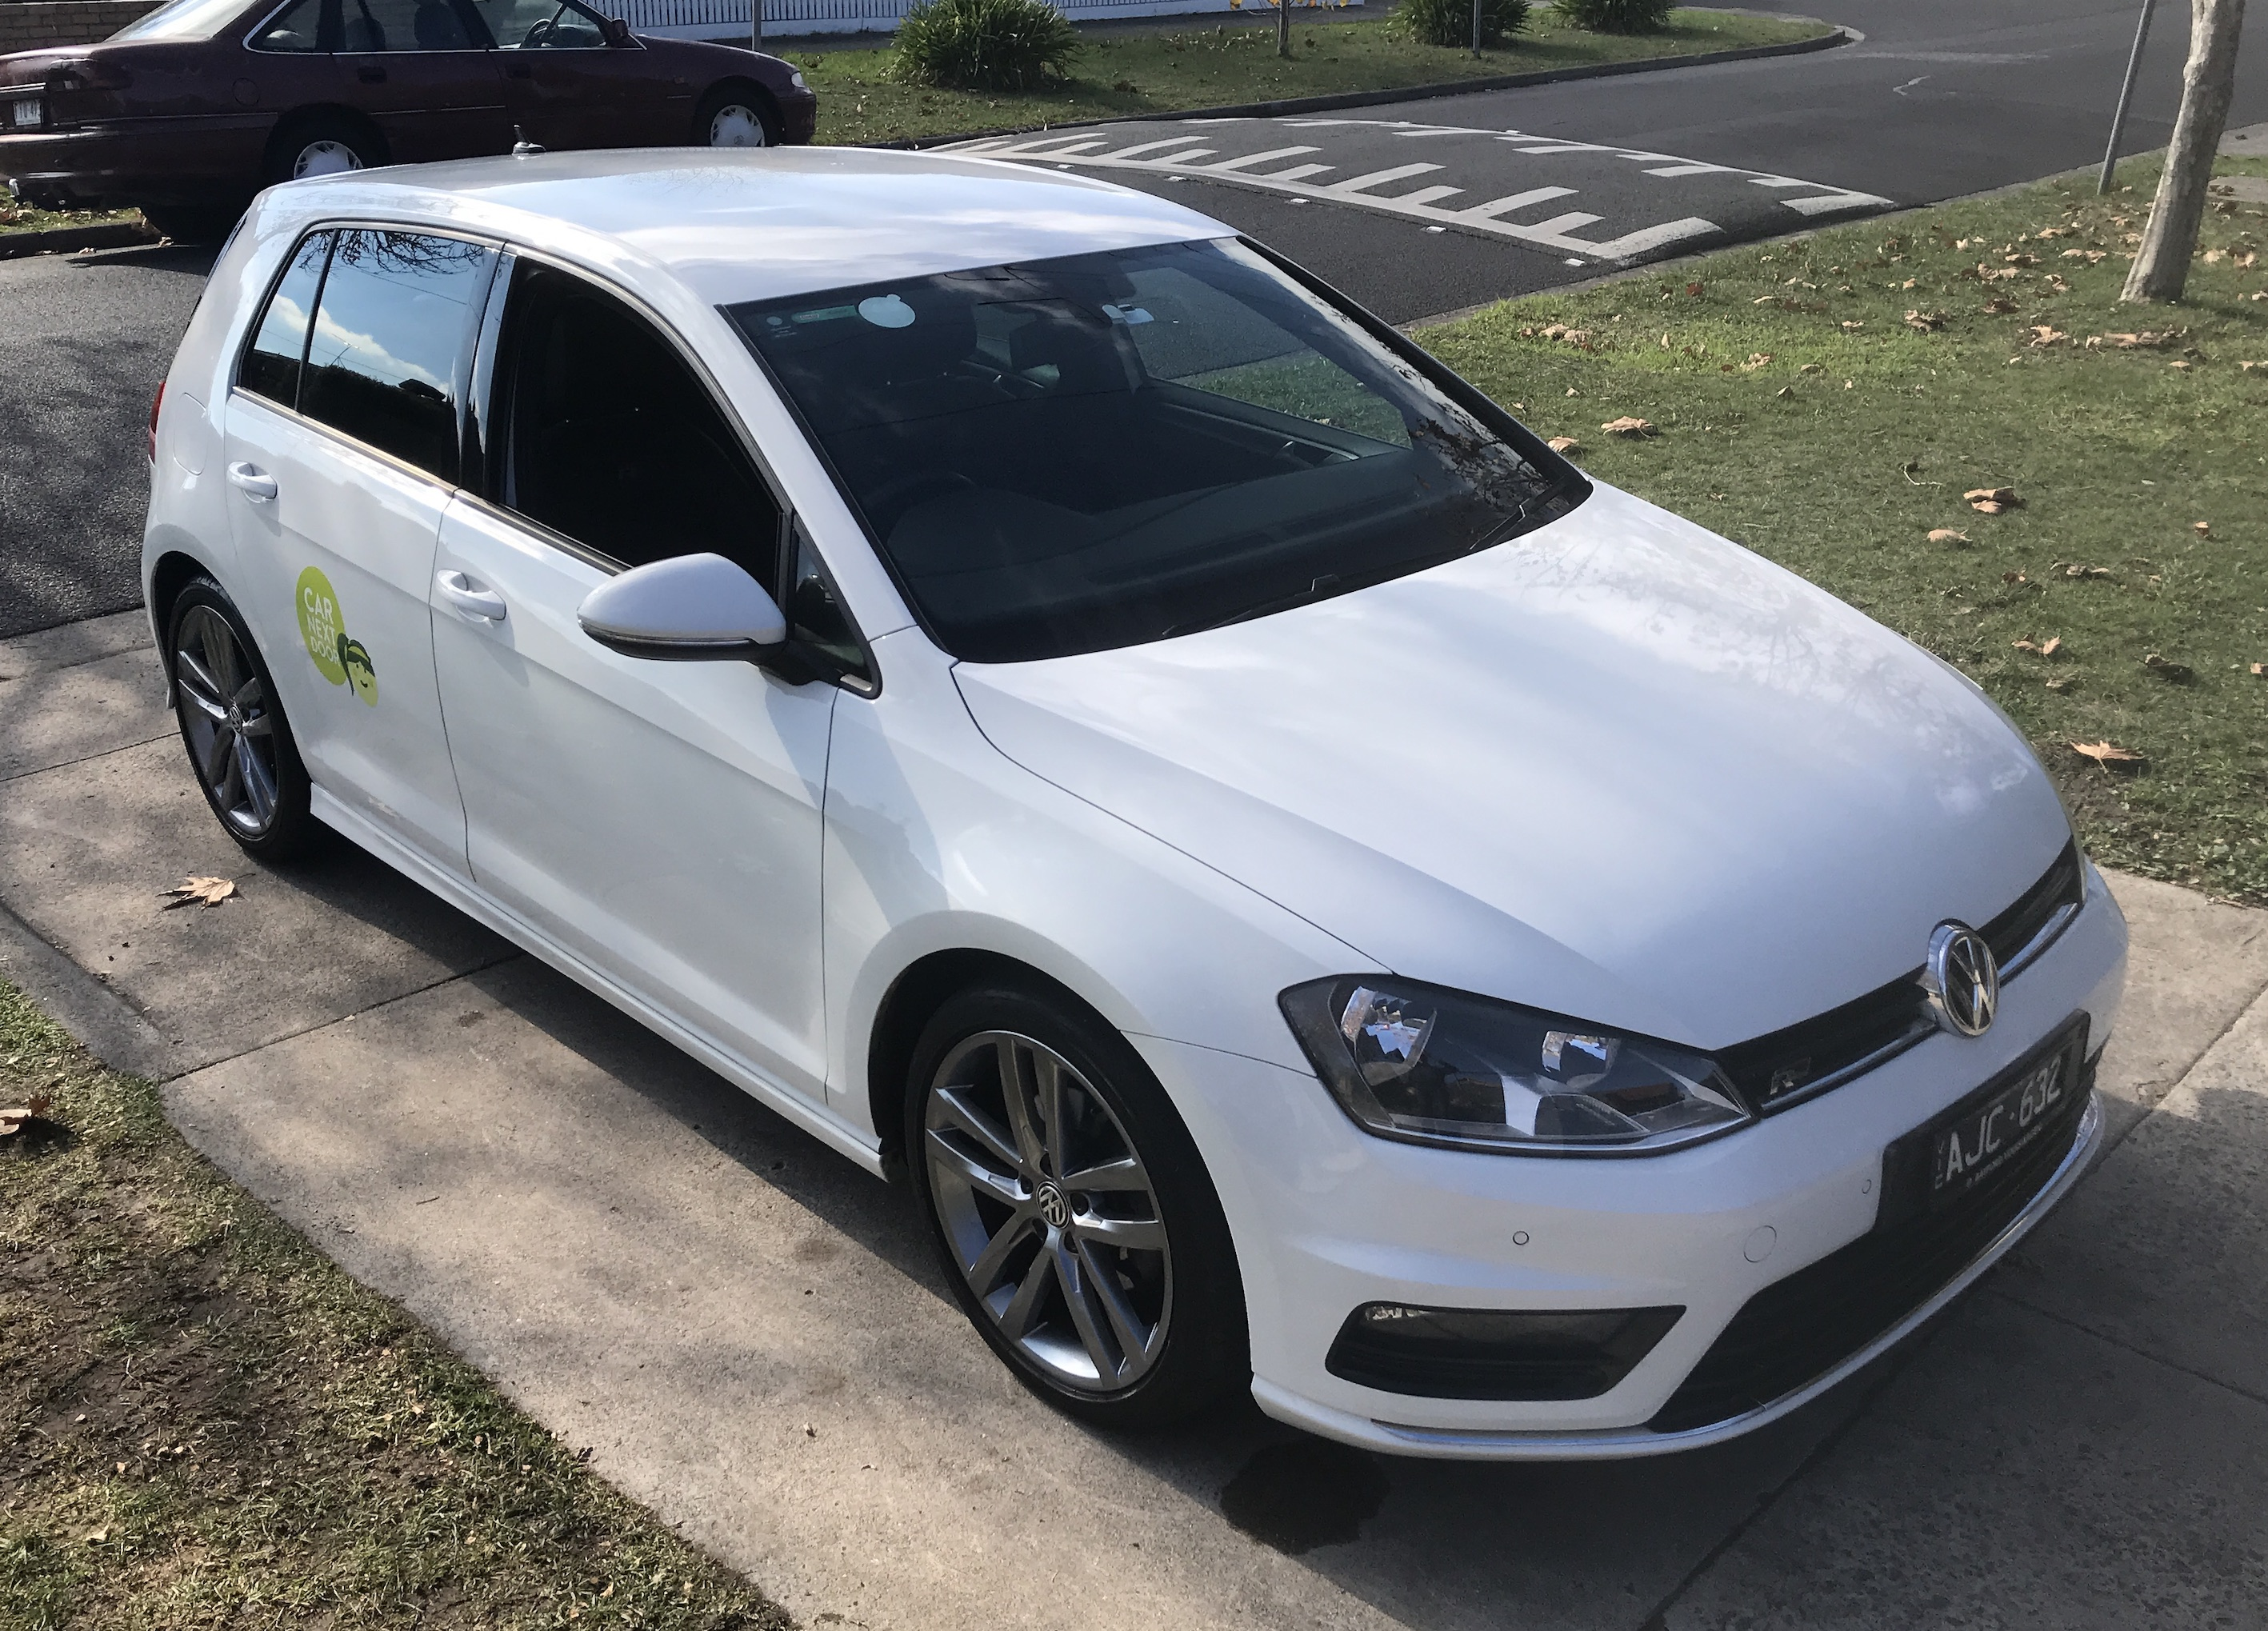 Picture of Deanne's 2016 Volkswagen Golf